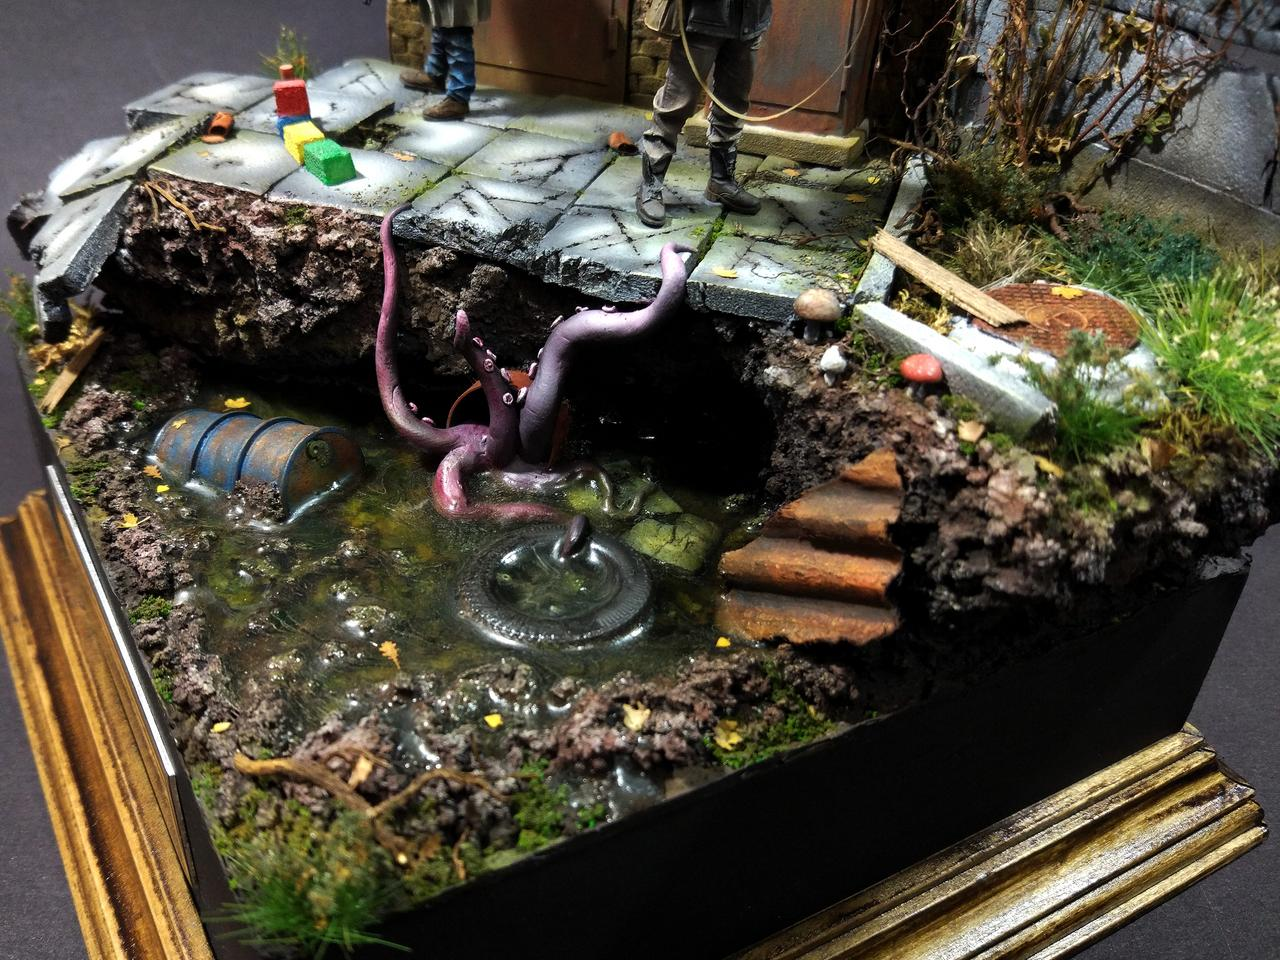 Dioramas and Vignettes: New undiscovered world, photo #12